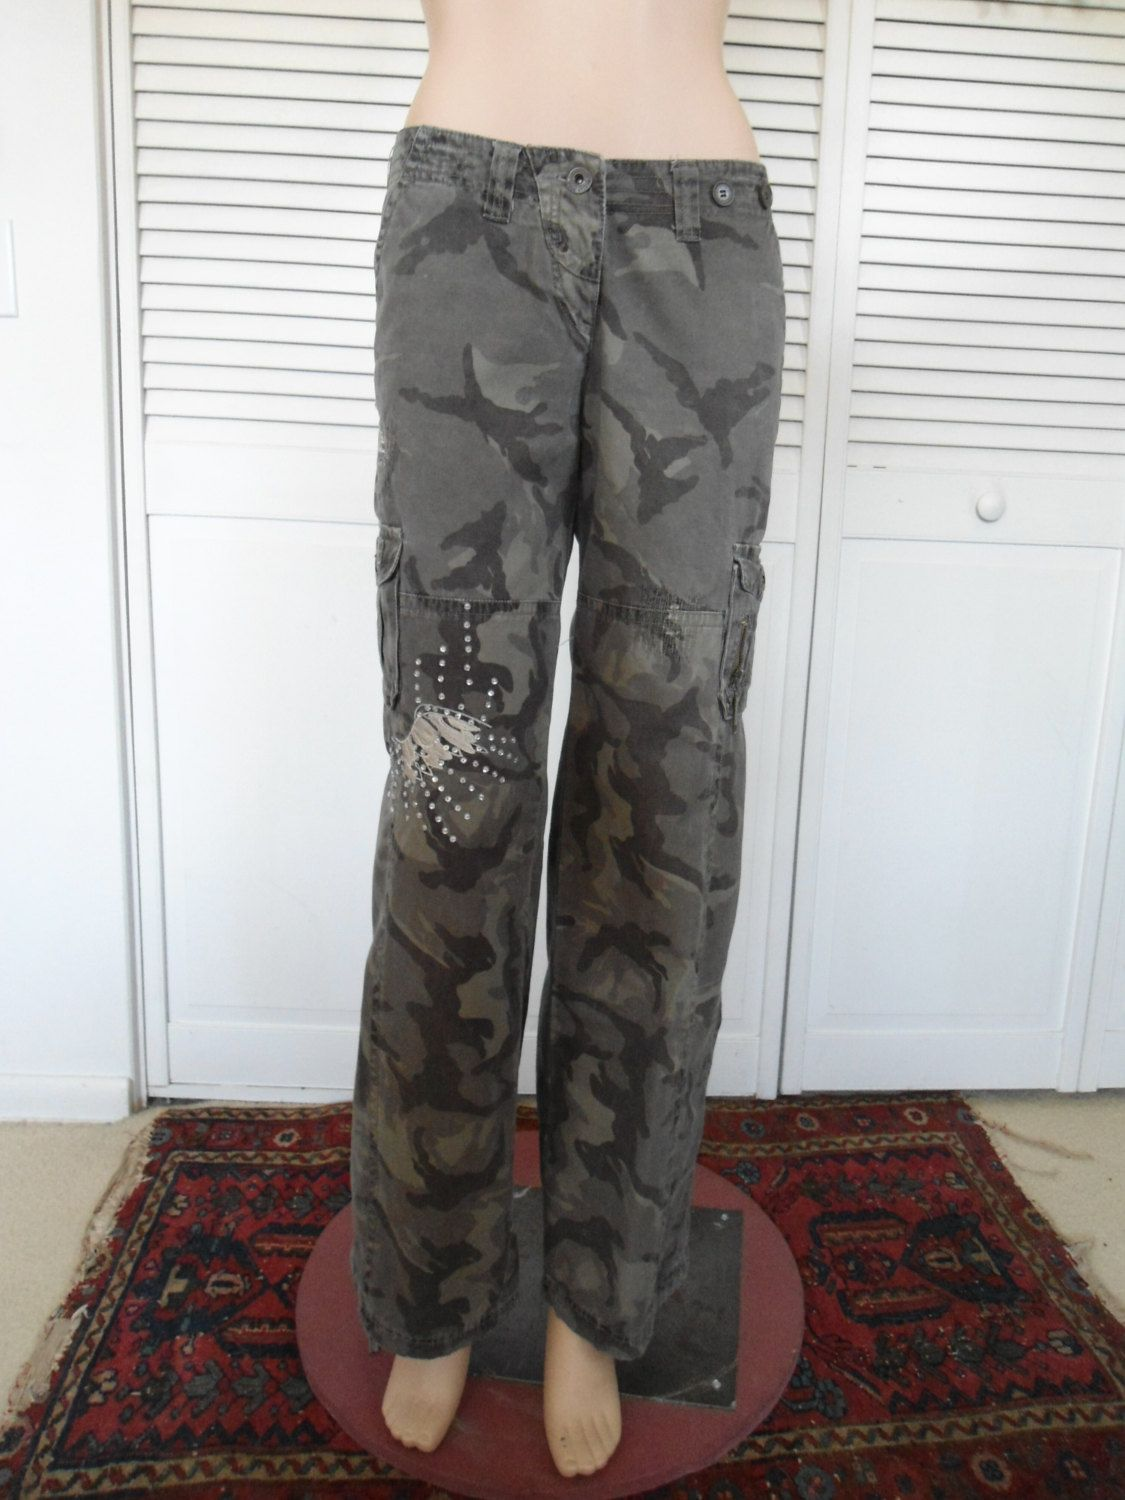 Camouflage Pants Army Green Cargo Embellished Hip Hugger Steampunk Hippie Black Grey Cargo 90s Festival Hiking The Land Of Bridget Upcycled Boho Hippie Bohe